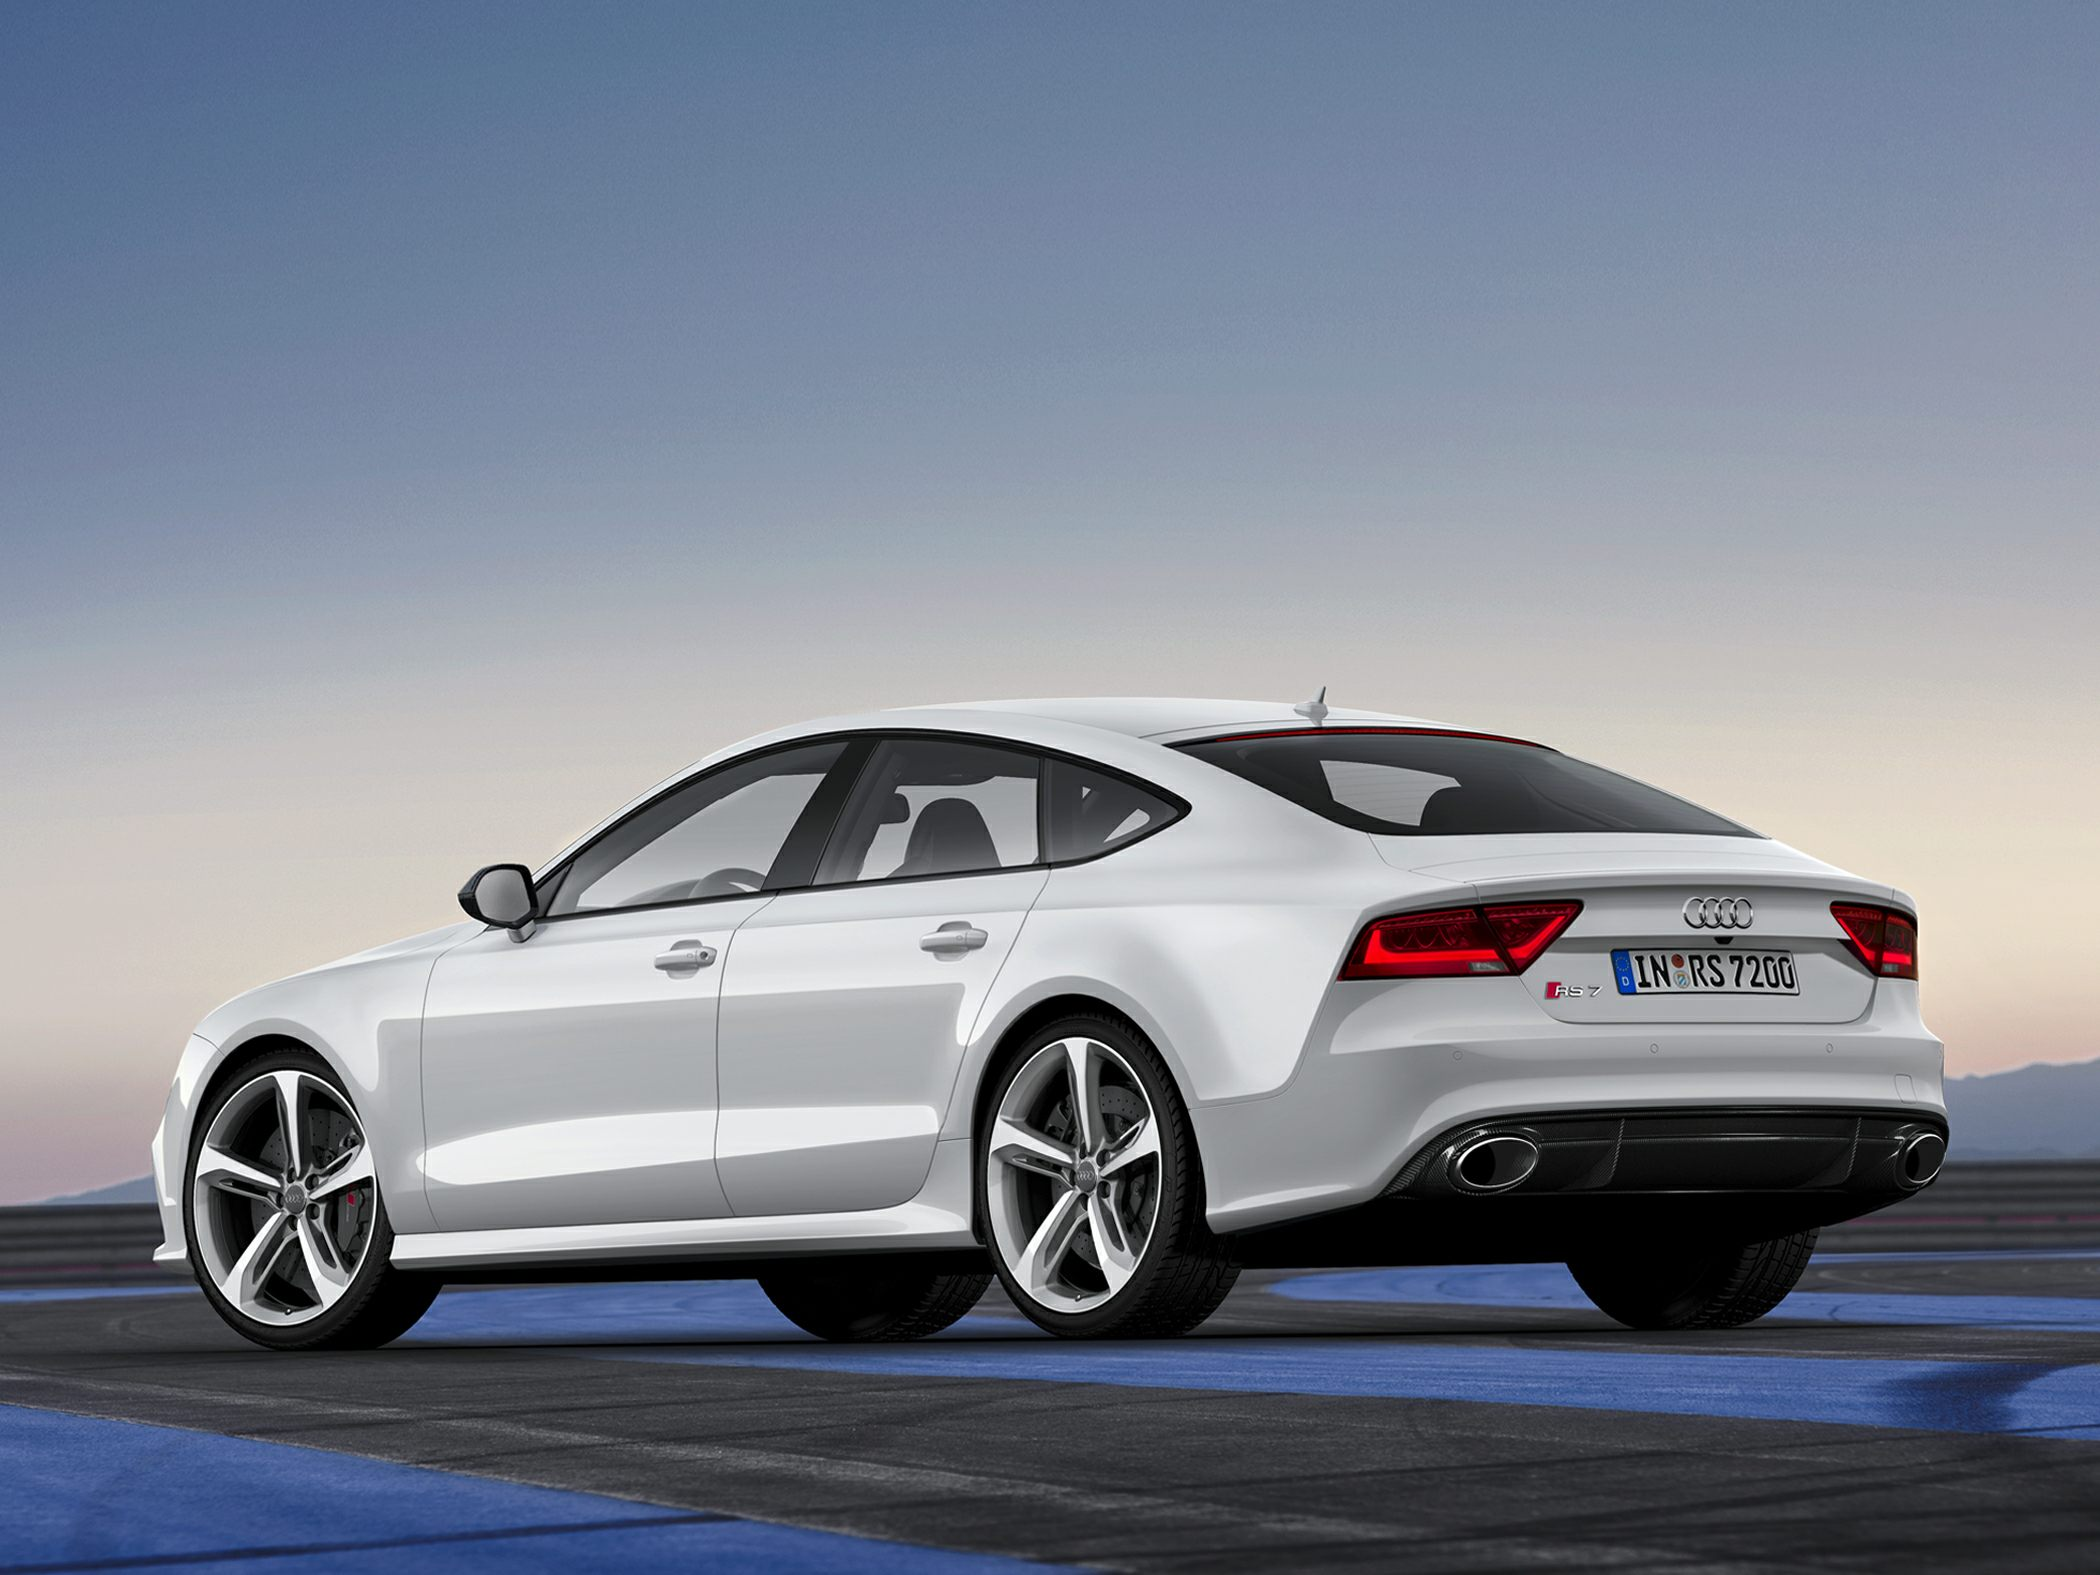 2014 Audi RS 7 Glam2